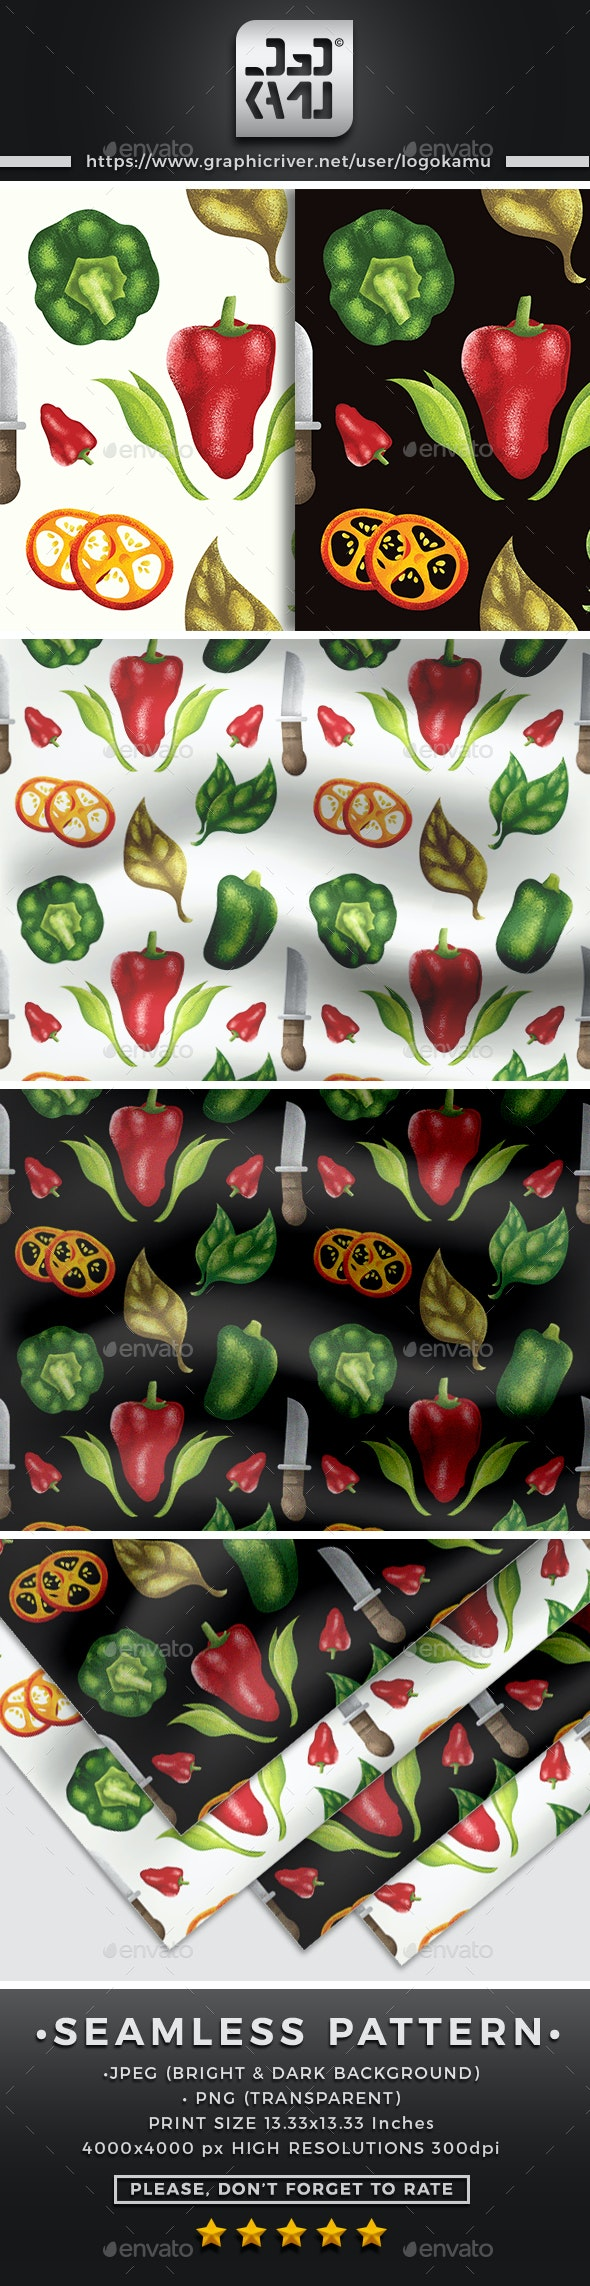 Vegetables Seamless Pattern - Patterns Backgrounds